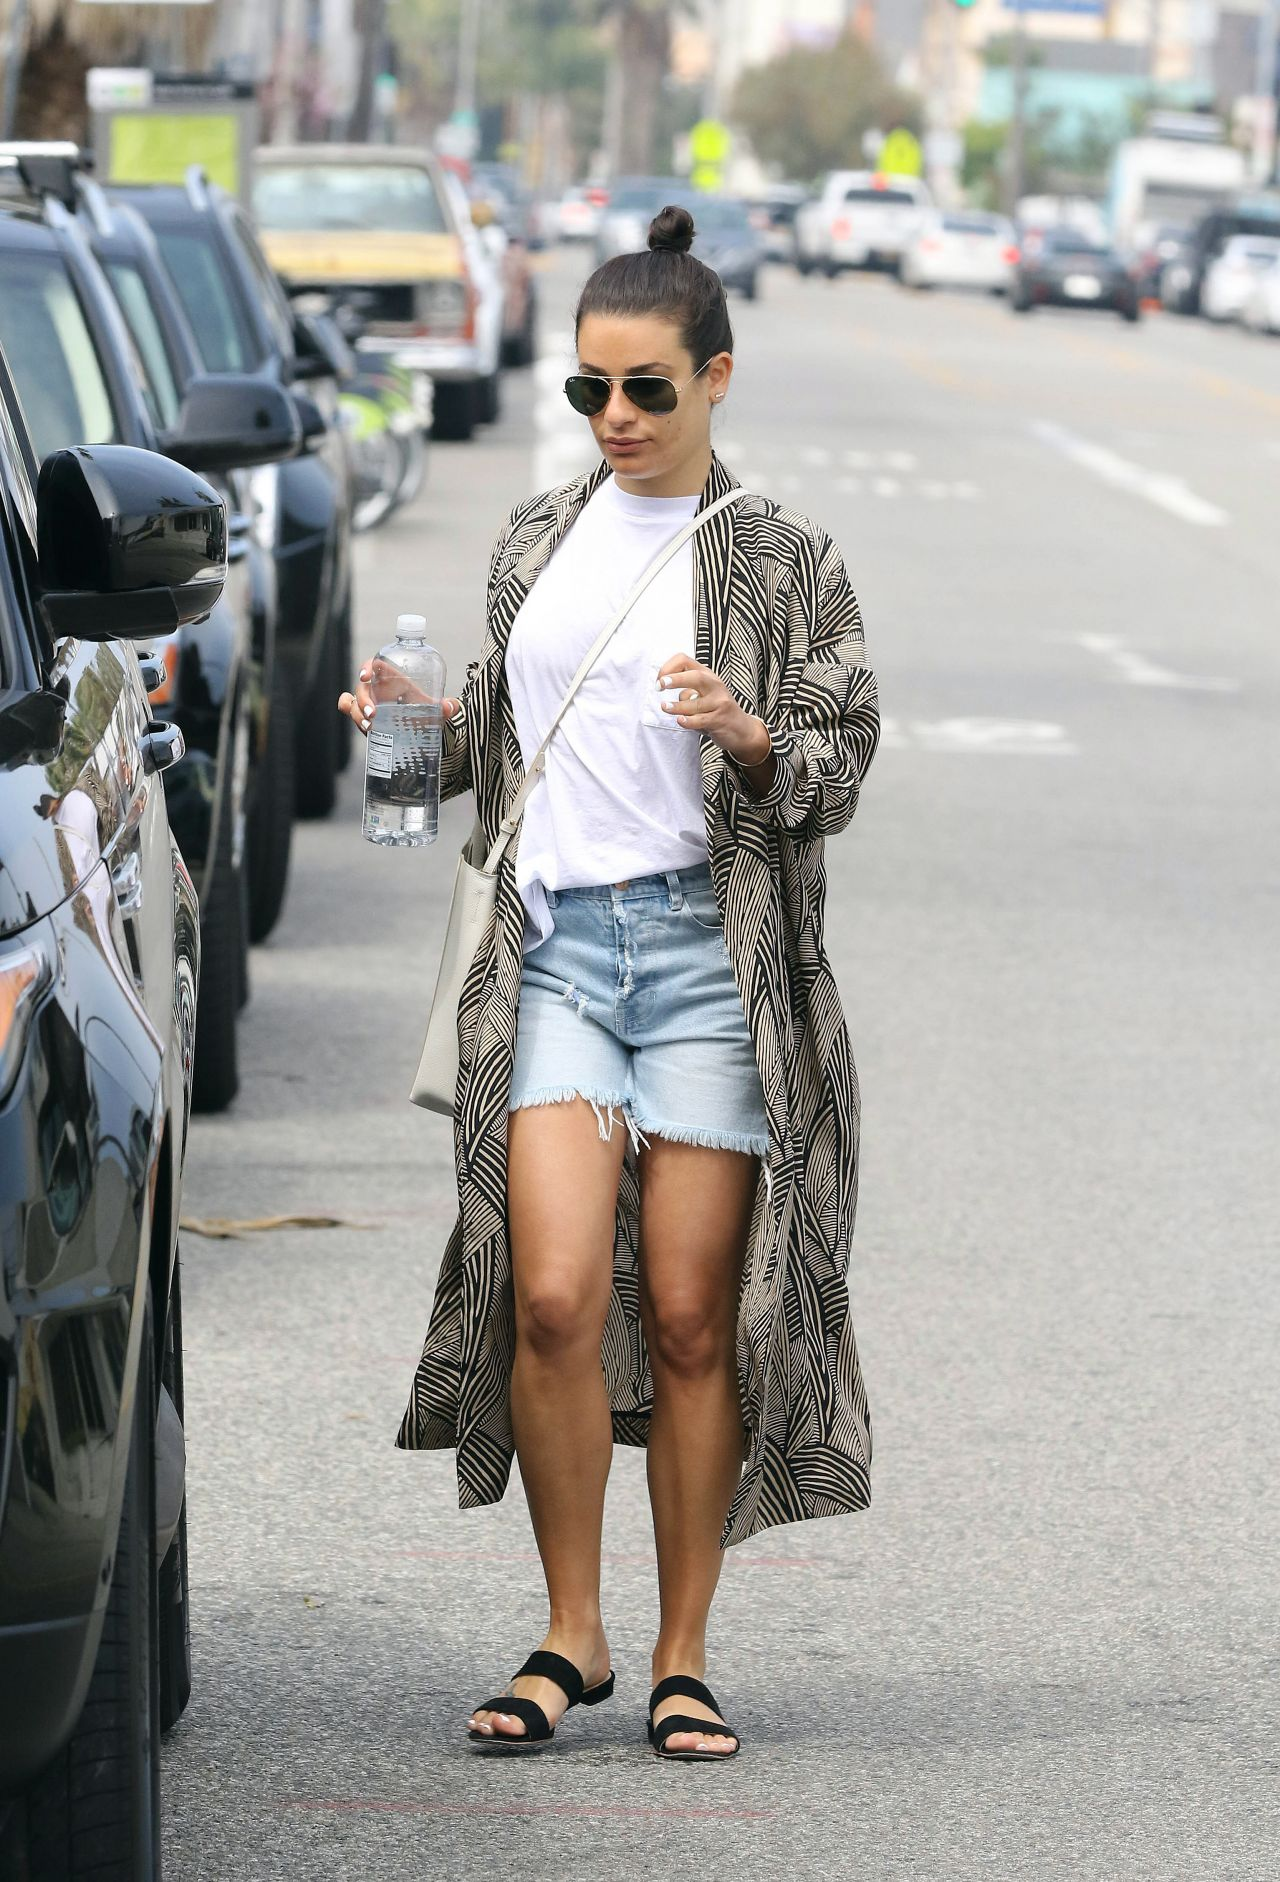 Lea Michele Arrives To All Year Round Clothing Store In